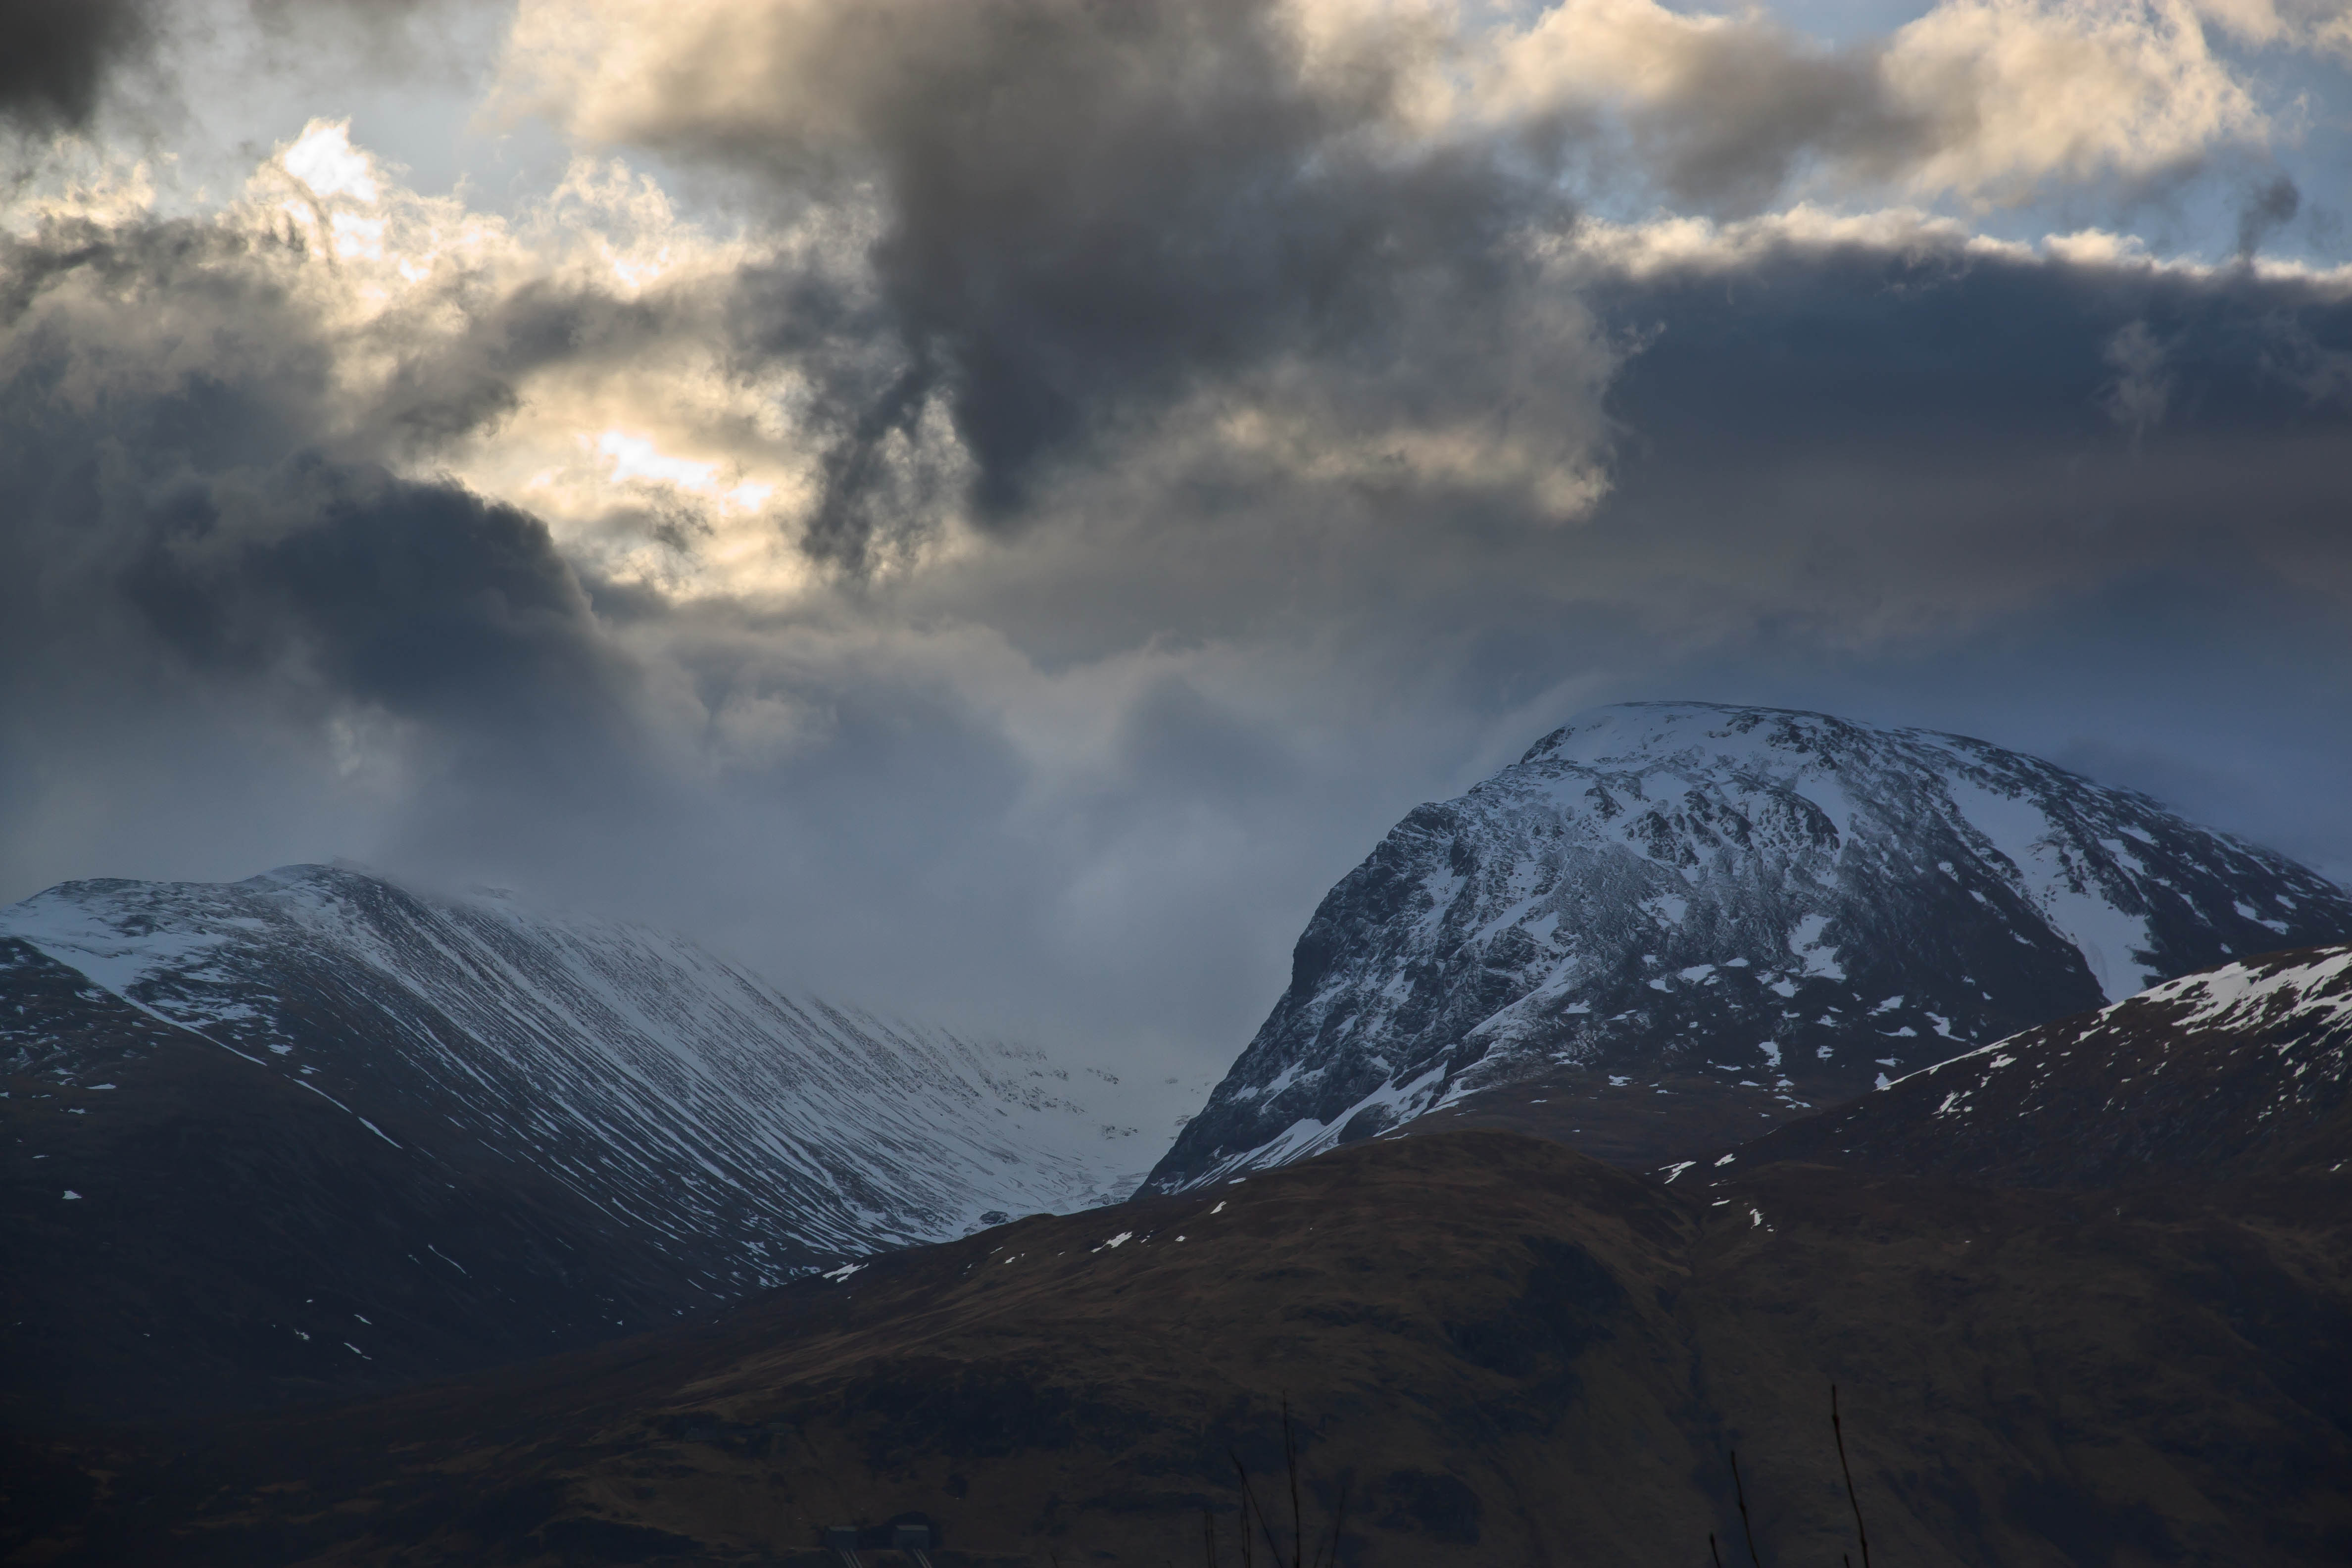 Ben Nevis and Carn Mor Dearg from Banavie on the A830.